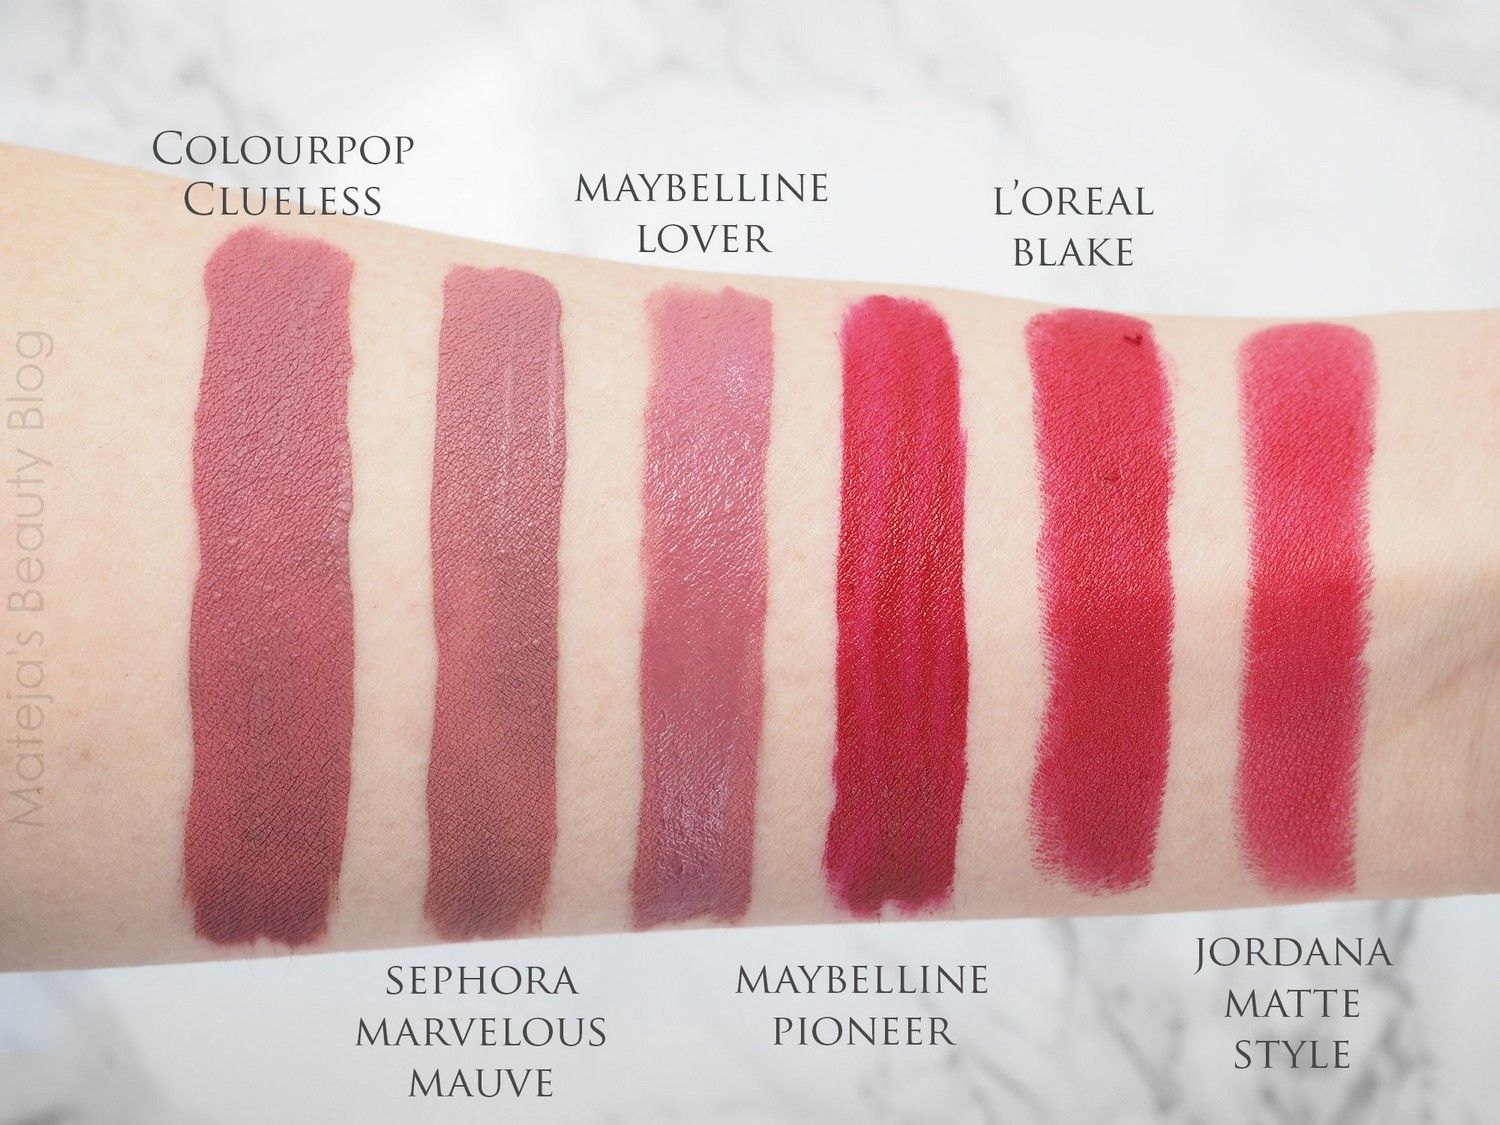 Colourpop Ultra Matte Clueless Sephora Lip Stain 13 Marvelous Mauve Maybelline Super Stay